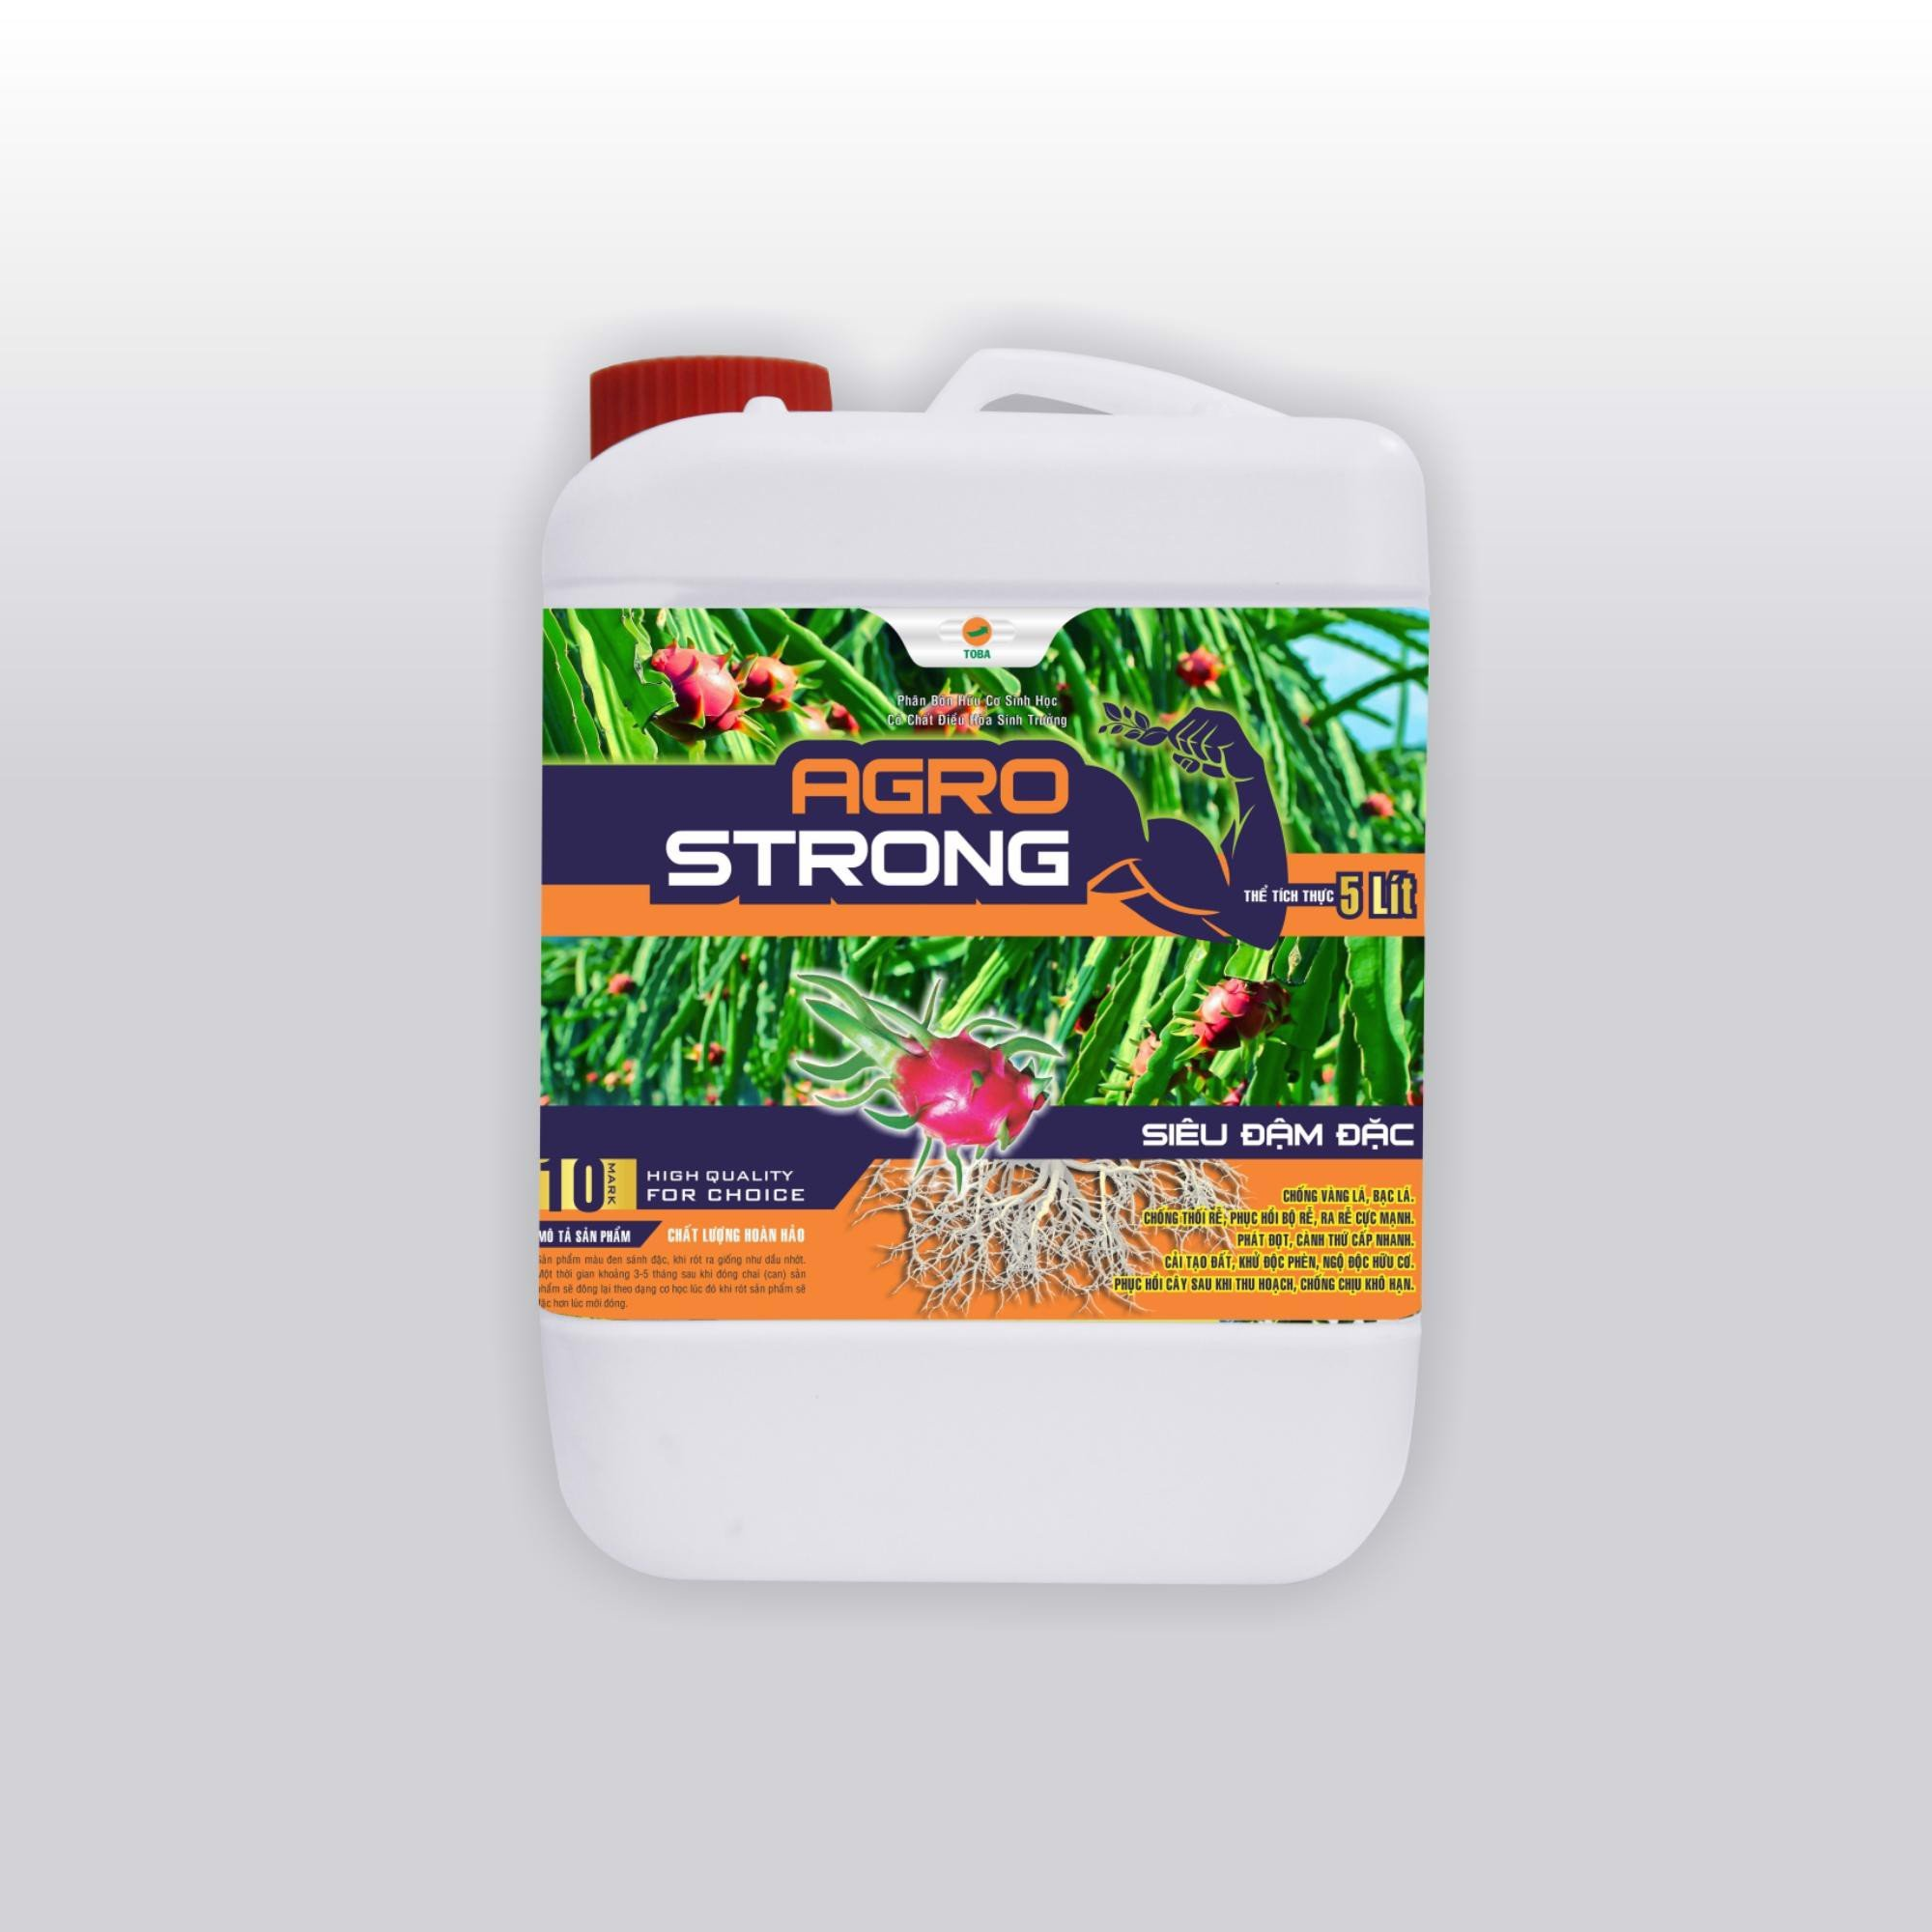 AGRO STRONG - THANH LONG - Can 5 Lít (NND-TD309.1)